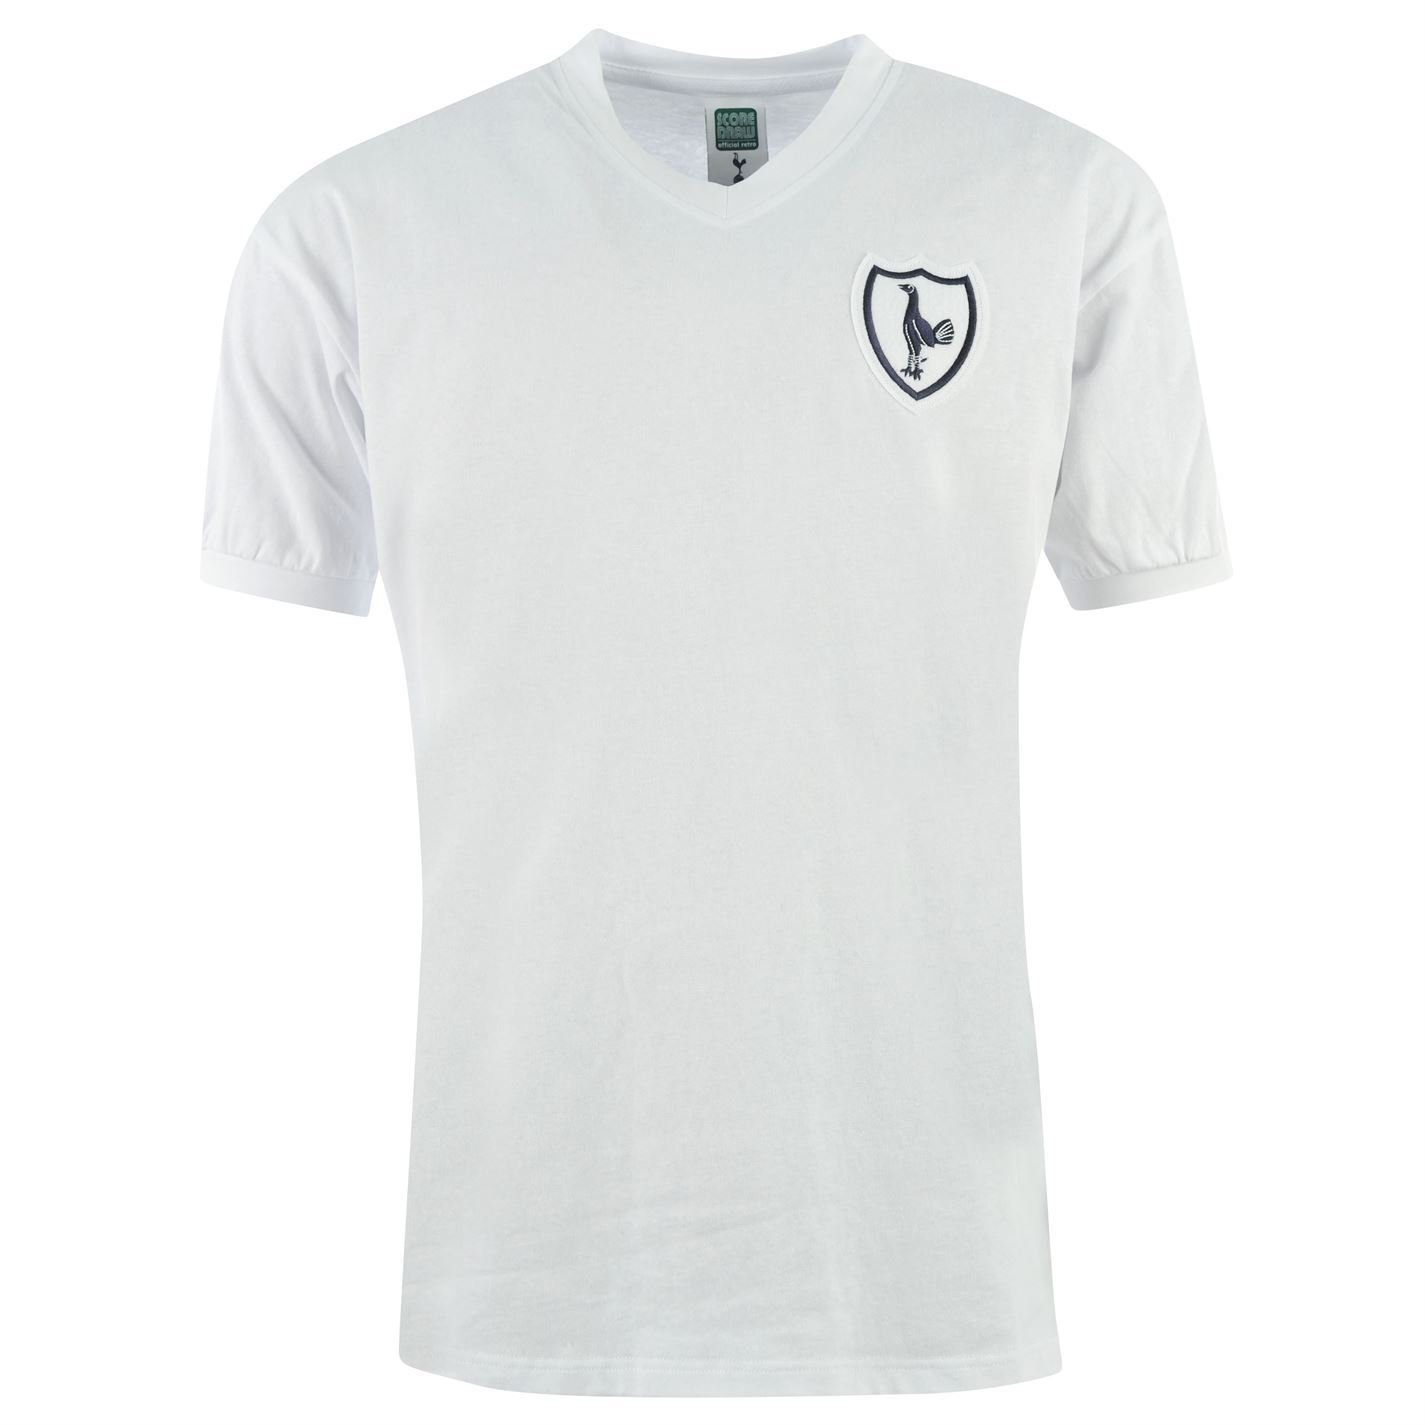 Tottenham Hotspur FC 1962 Home Jersey Score Draw Mens Retro Football Soccer Top